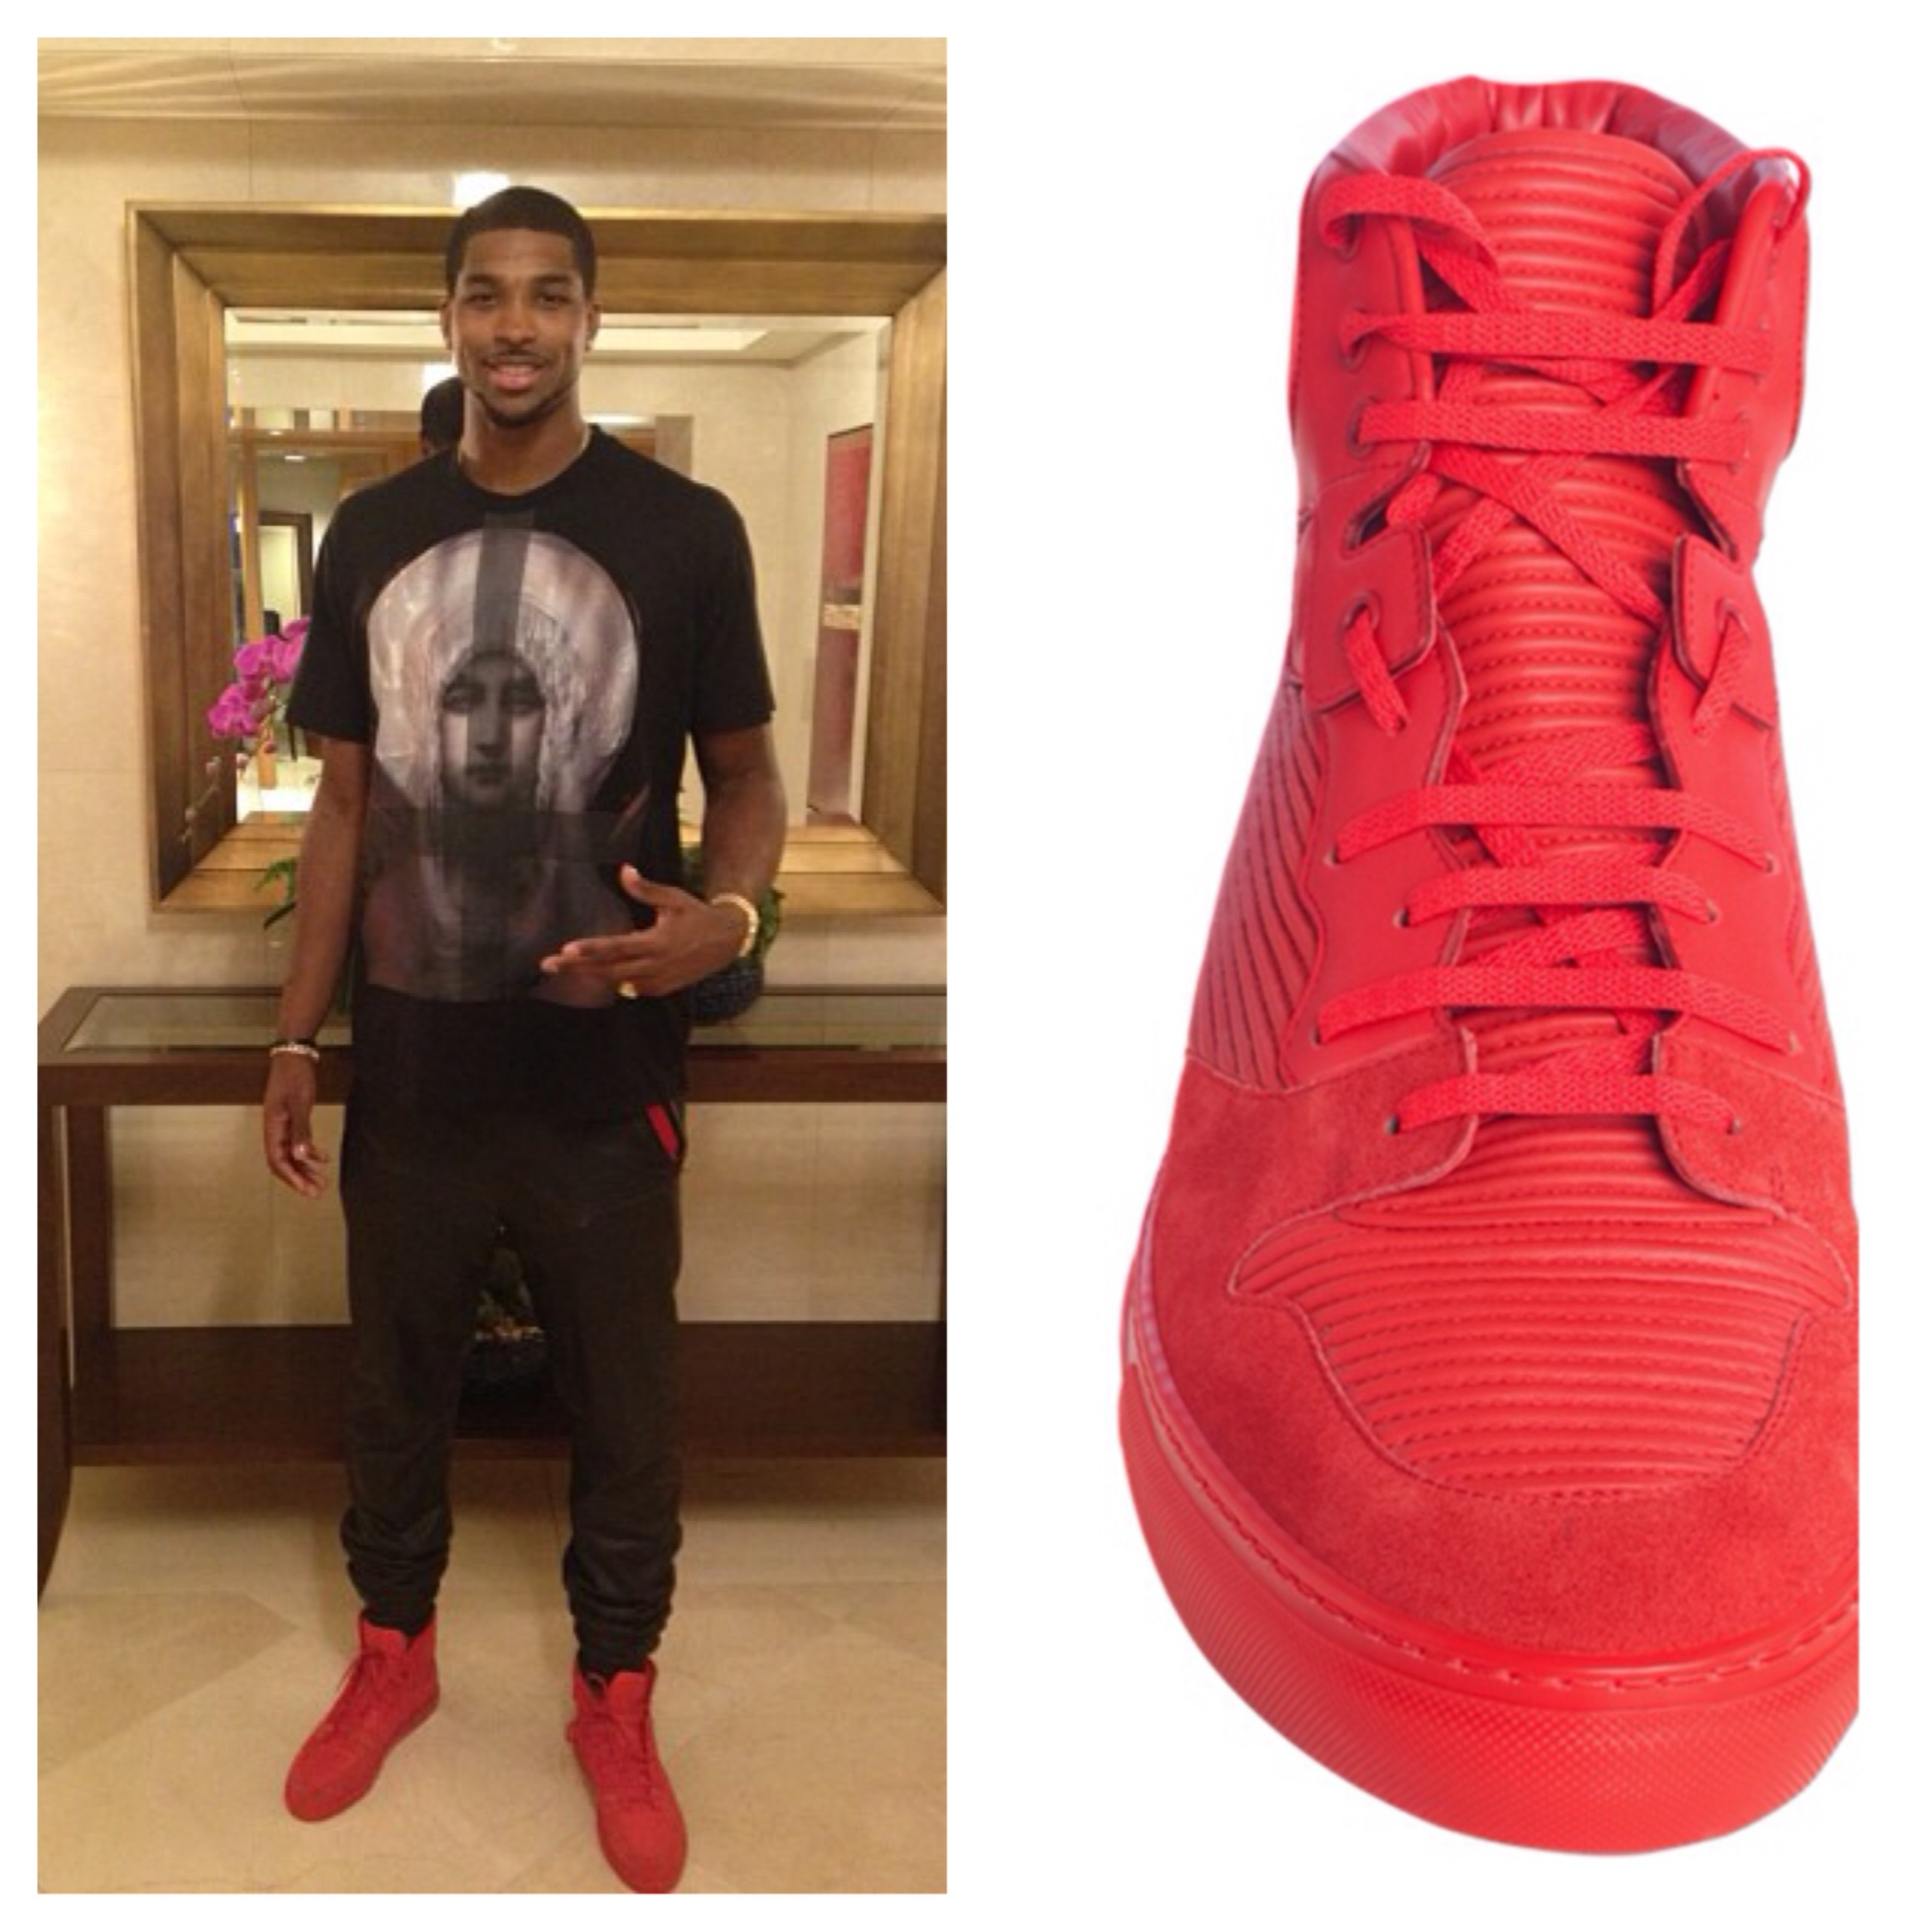 Tristan-Thompson-instagram-red-balenciaga-sneakers-pleated-hightop